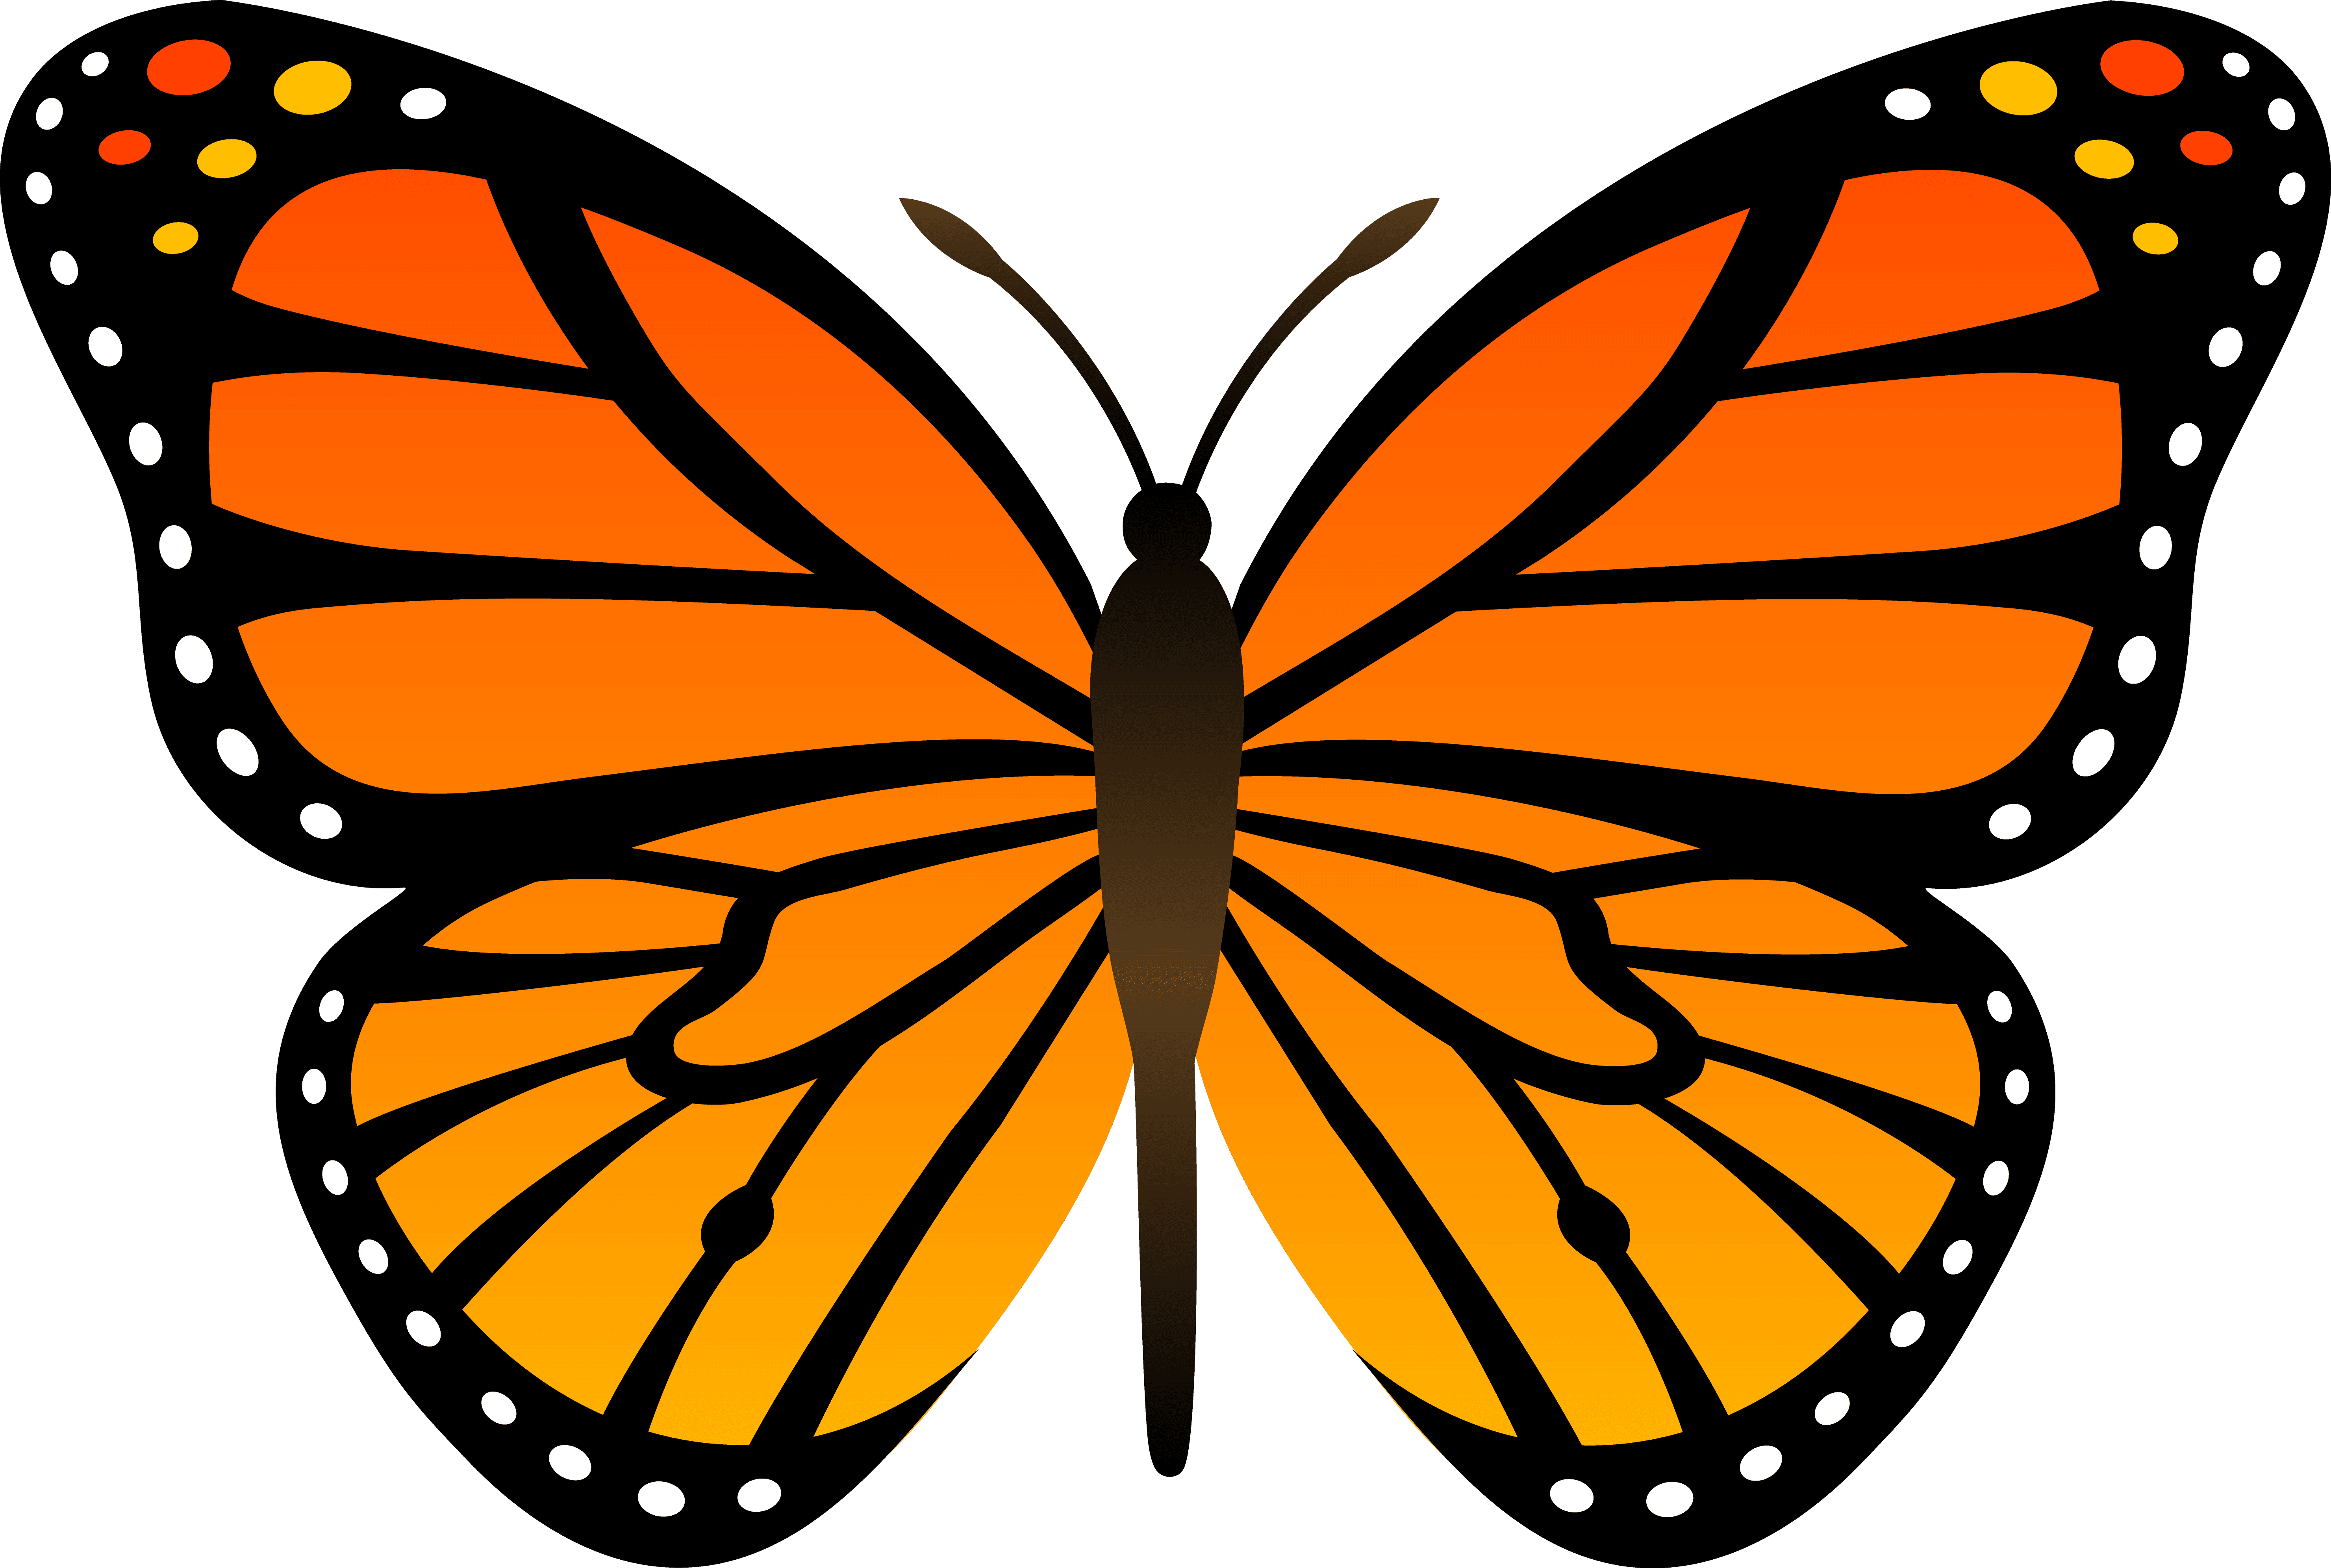 A clip art image of a Monarch butterfly